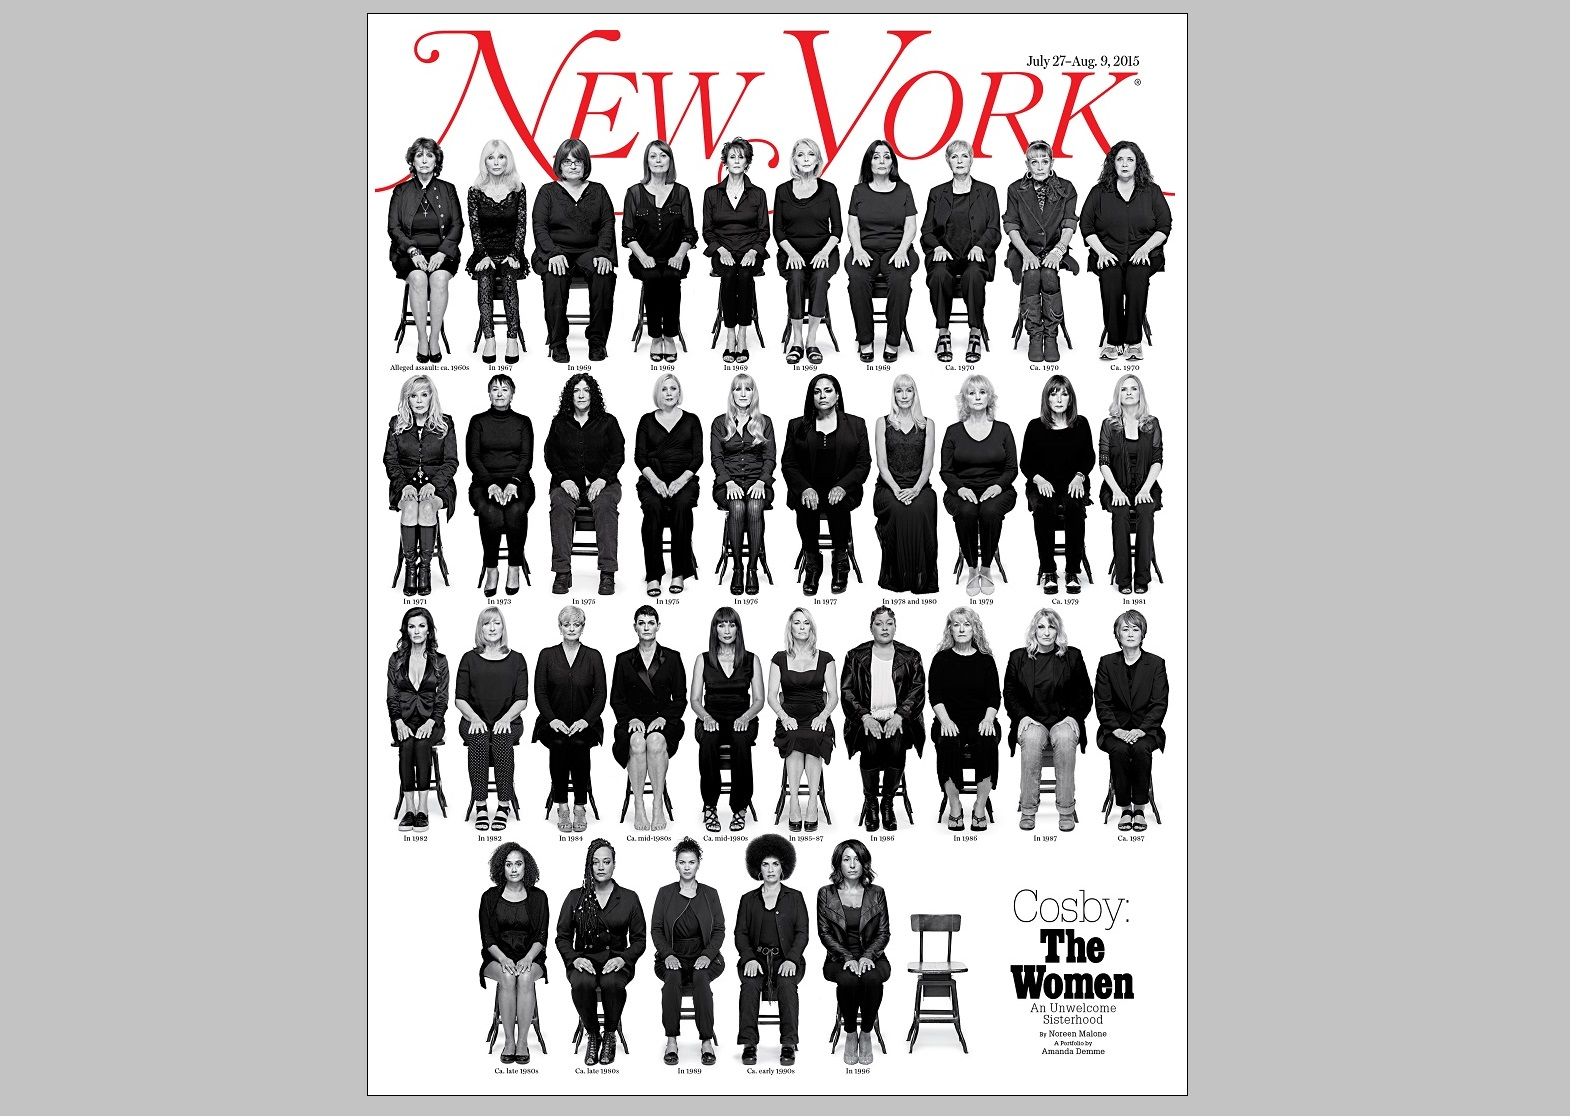 New York magazine crosby cover